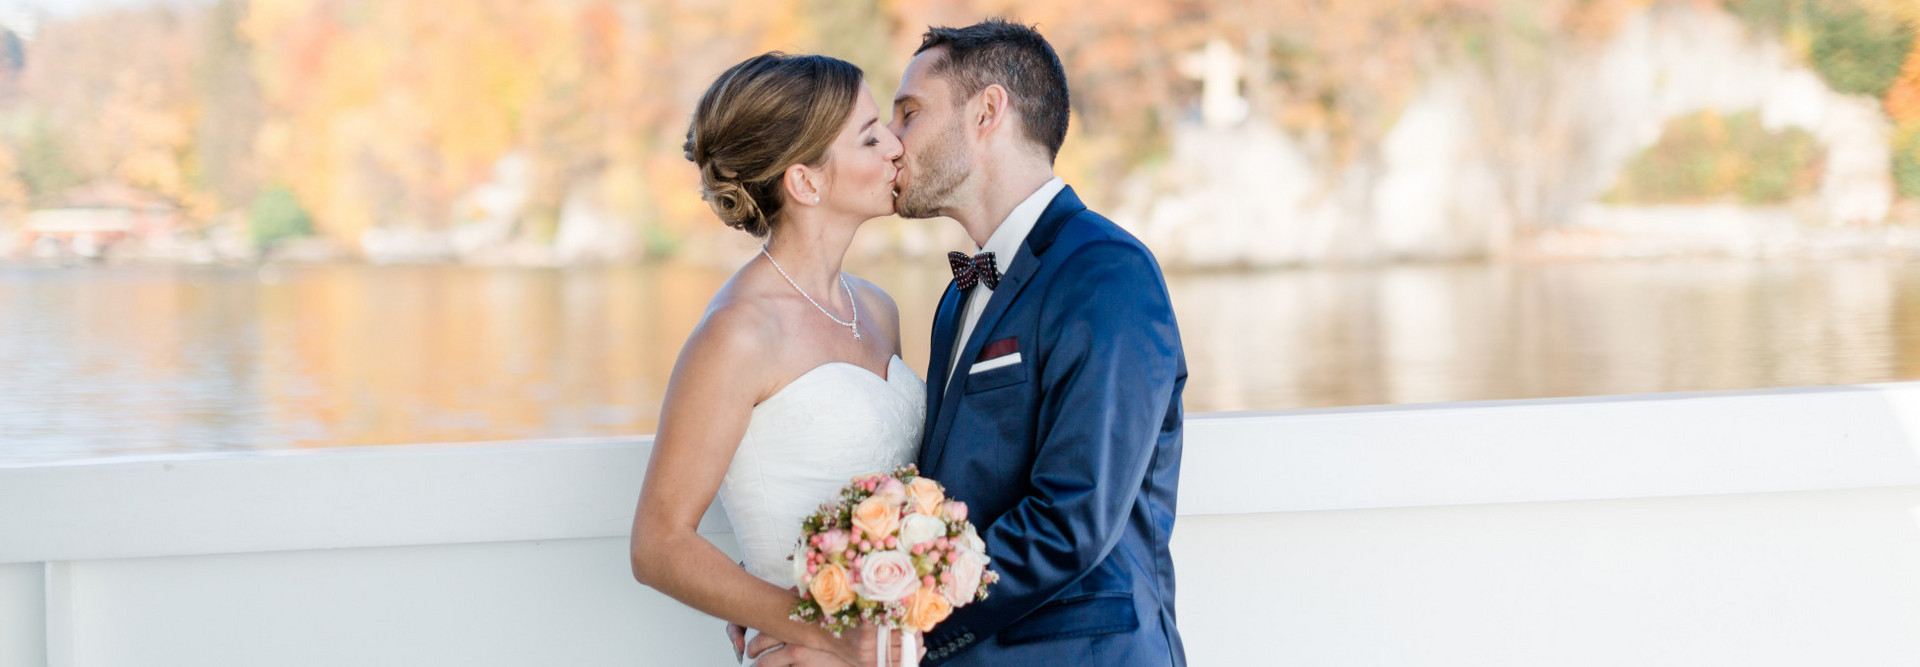 The bride and groom kiss outside on the ship. In the background the lake and the forest with coloured leaves can be seen blurred.